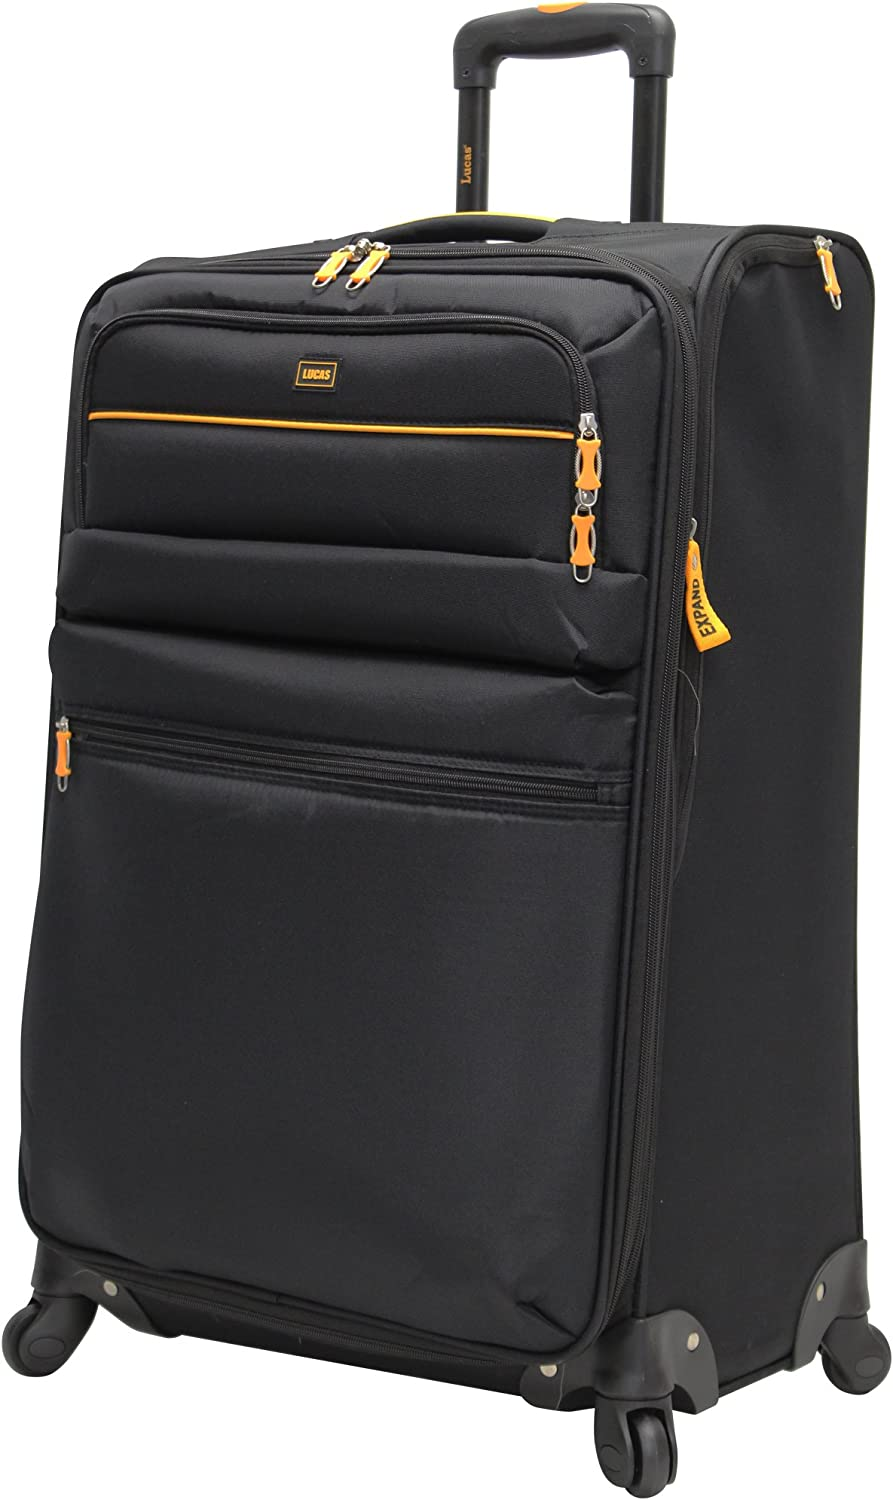 Lucas Luggage Lightweight 27 inch Large Softside Expandable Suitcase With Spinner Wheels 27in, Tuscany Black